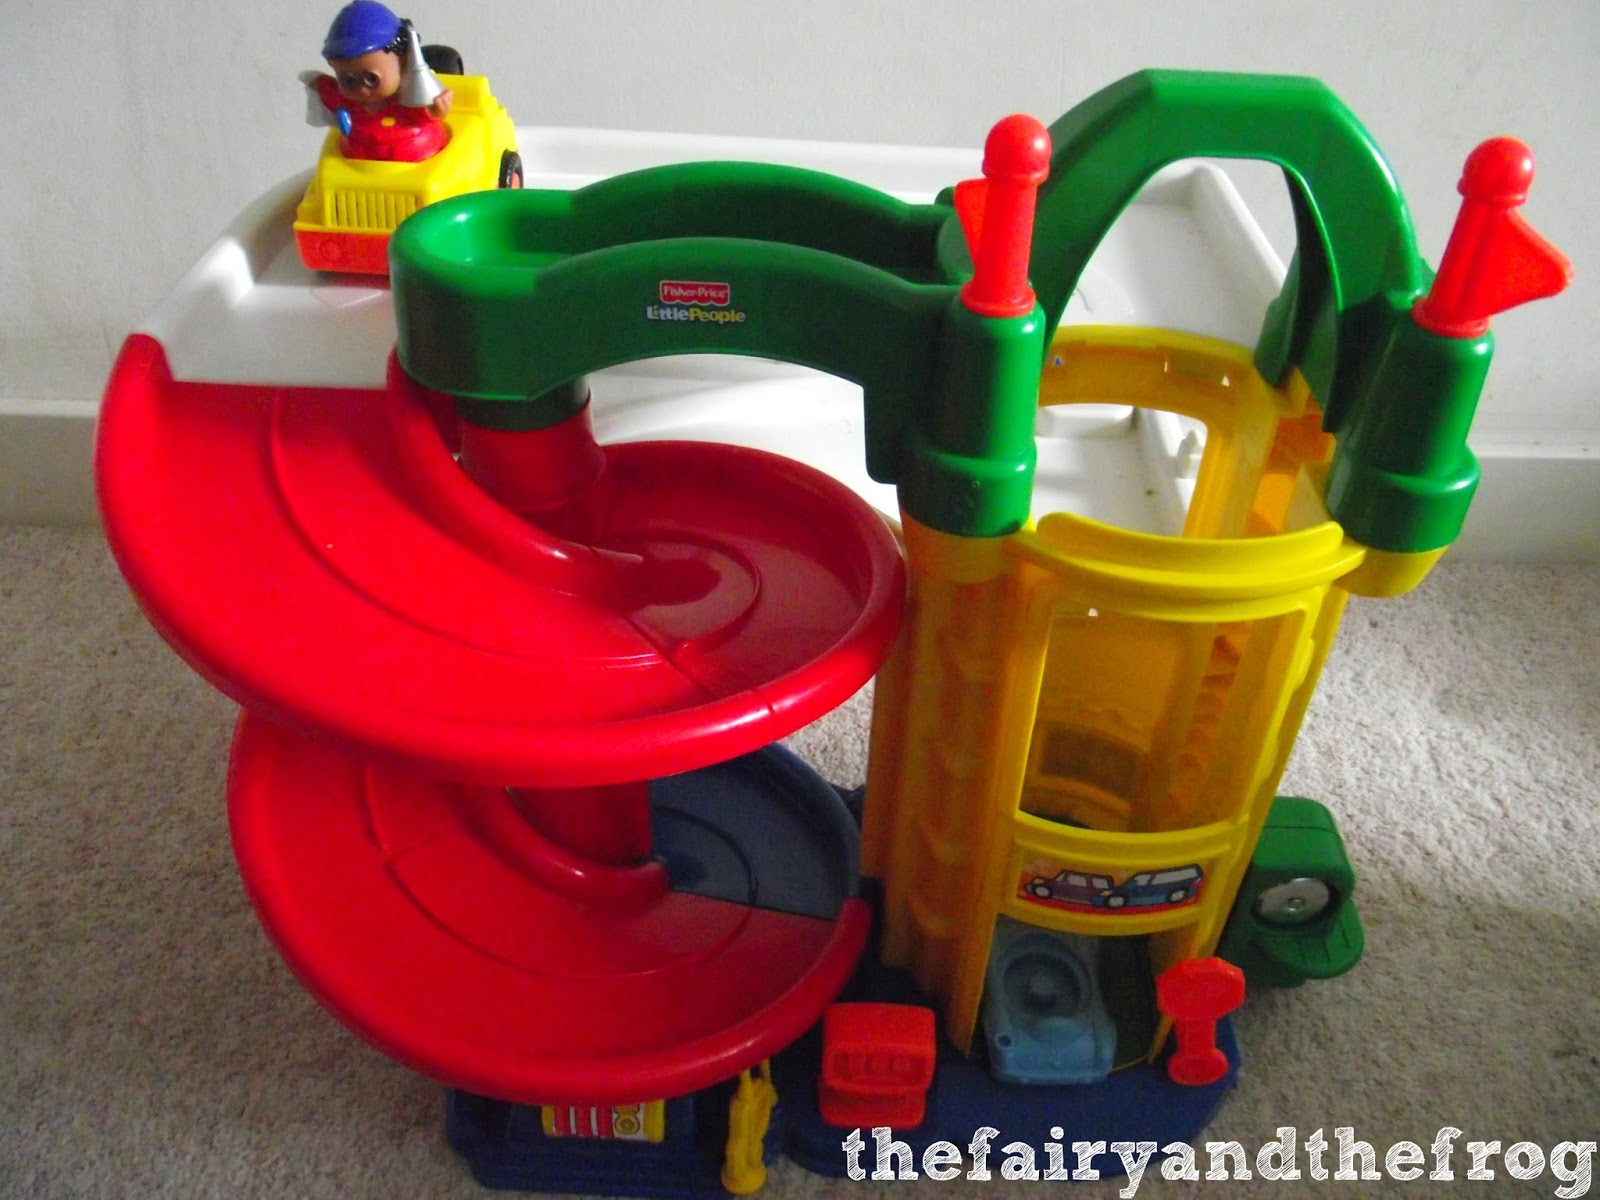 Garage Little People : The fairy and the frog: fisher price little people racing ramps